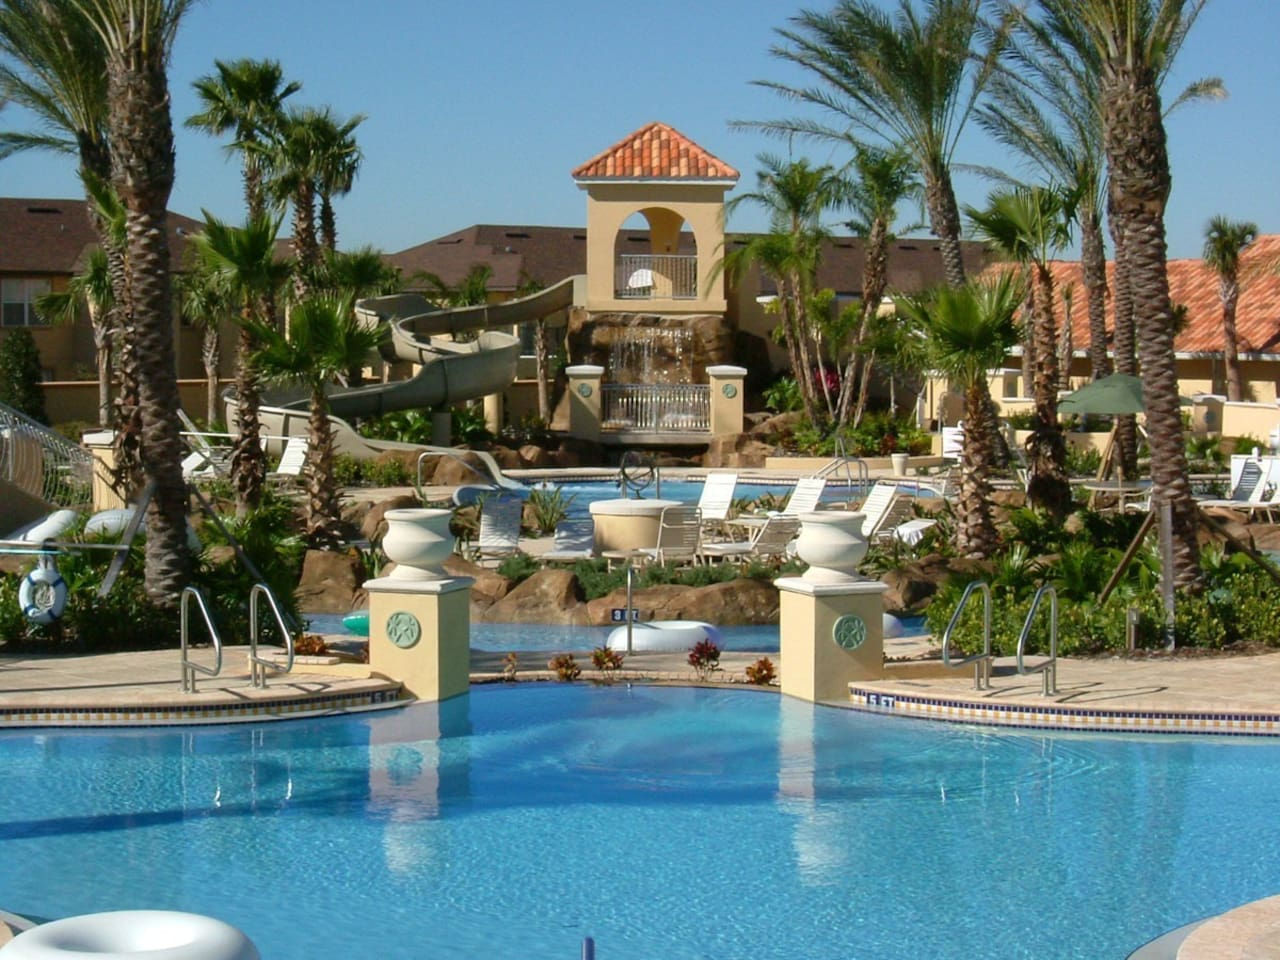 The main pool and water park on site